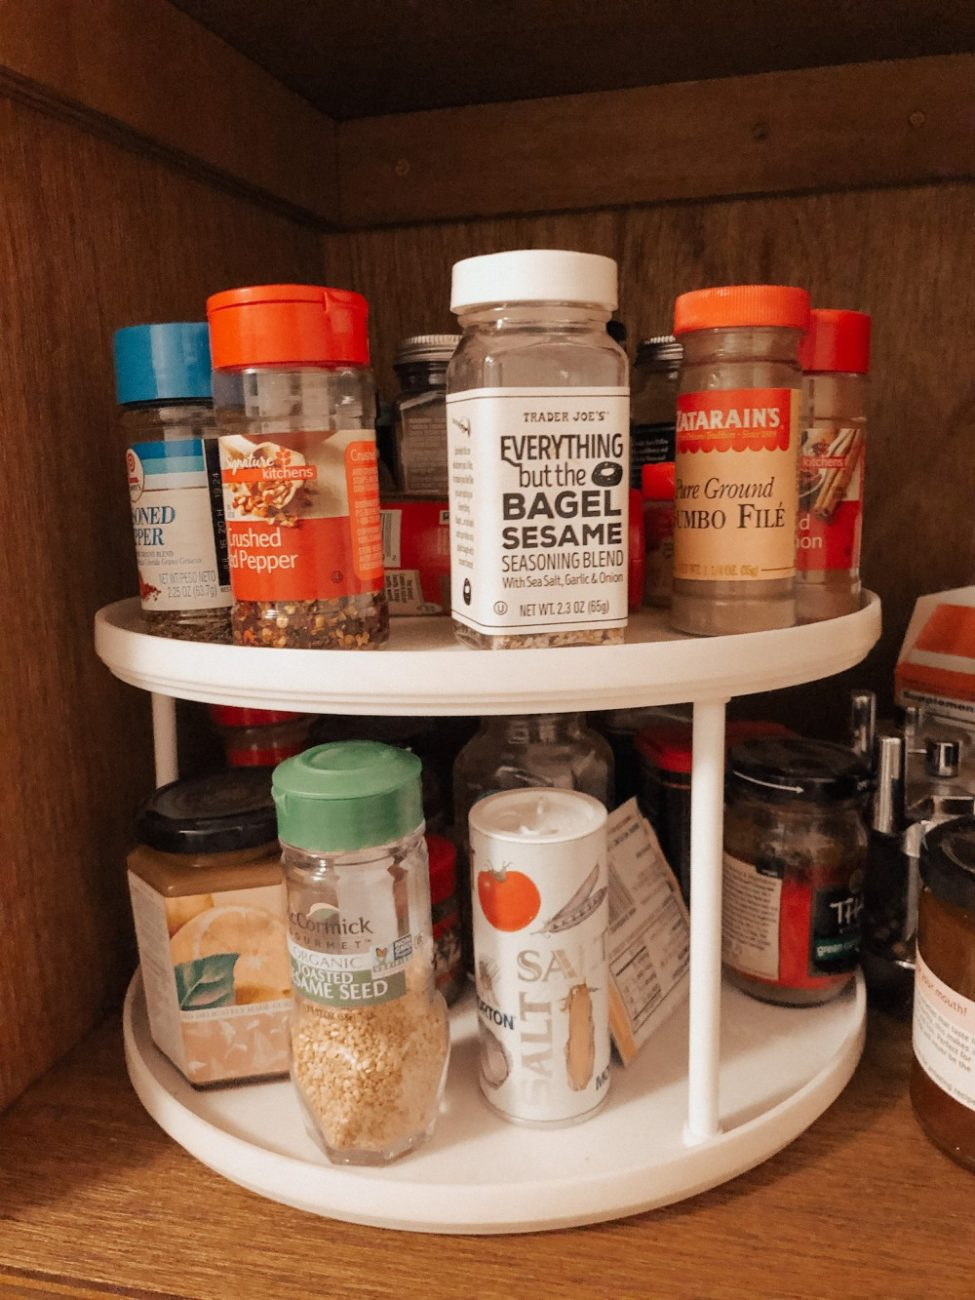 Pantry storage solution for herbs and spices and other seasonings. #pantrystorage #pantryorganization #storagesolutions #springcleaning